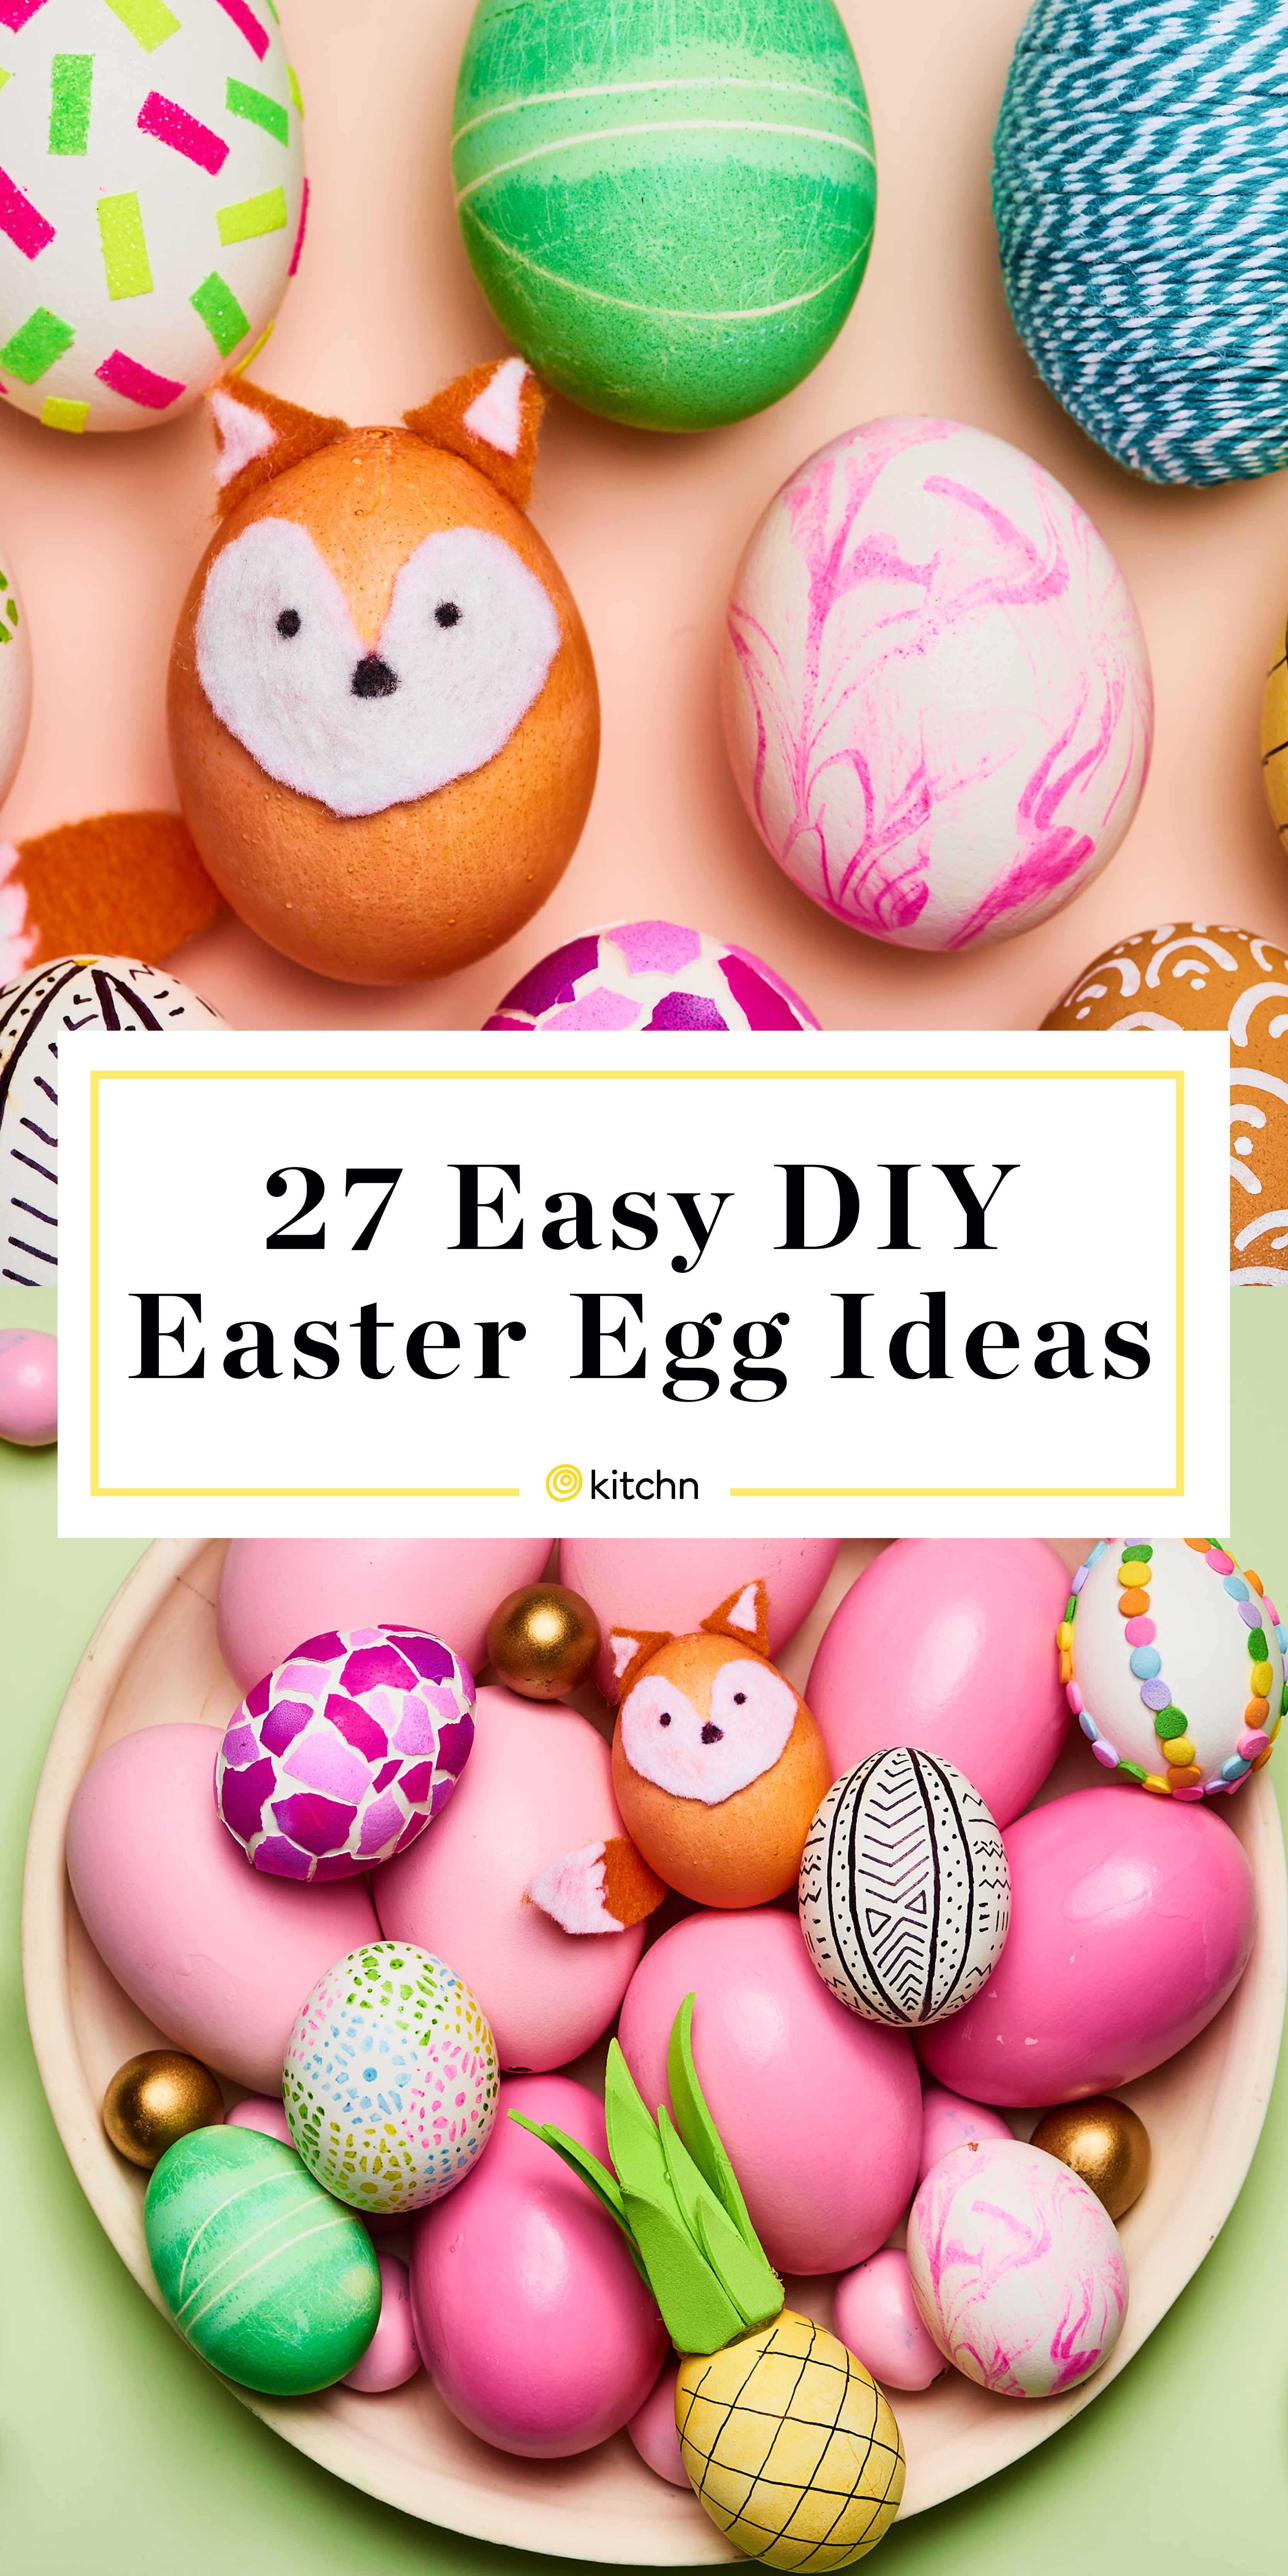 Easy Easter Egg Decorating Ideas Kitchn